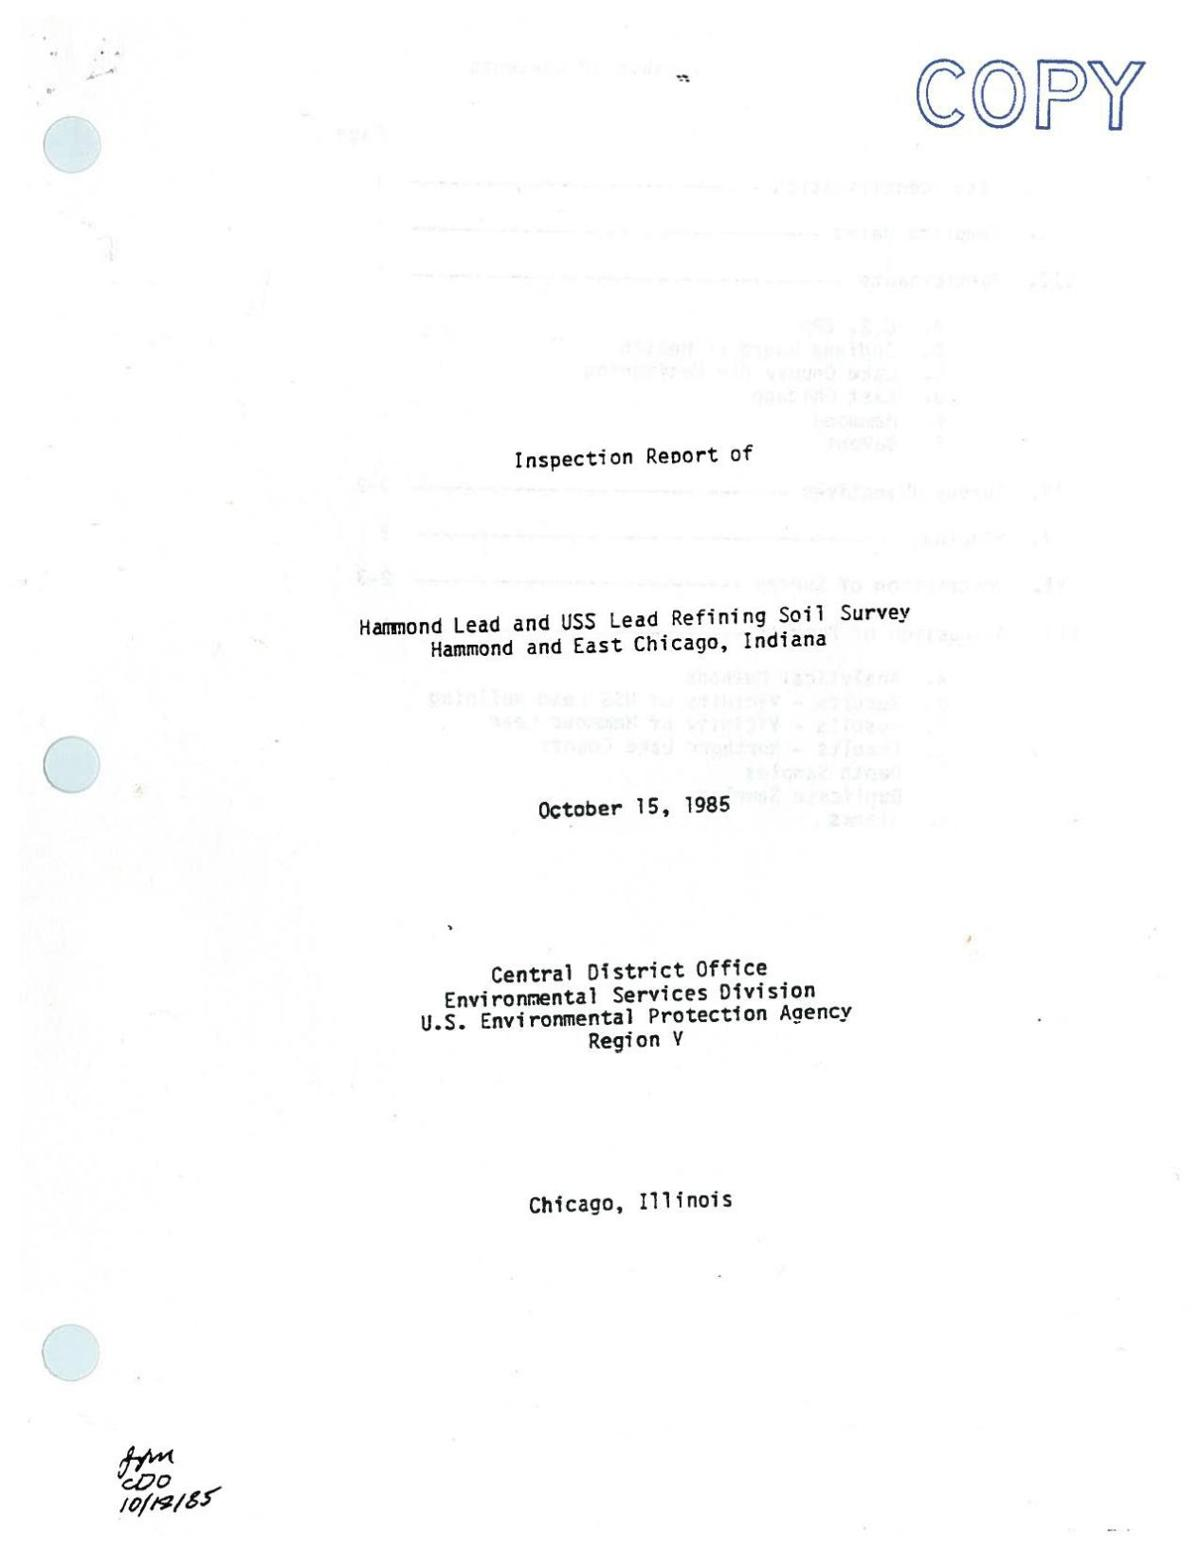 1985 IDEM inspection report